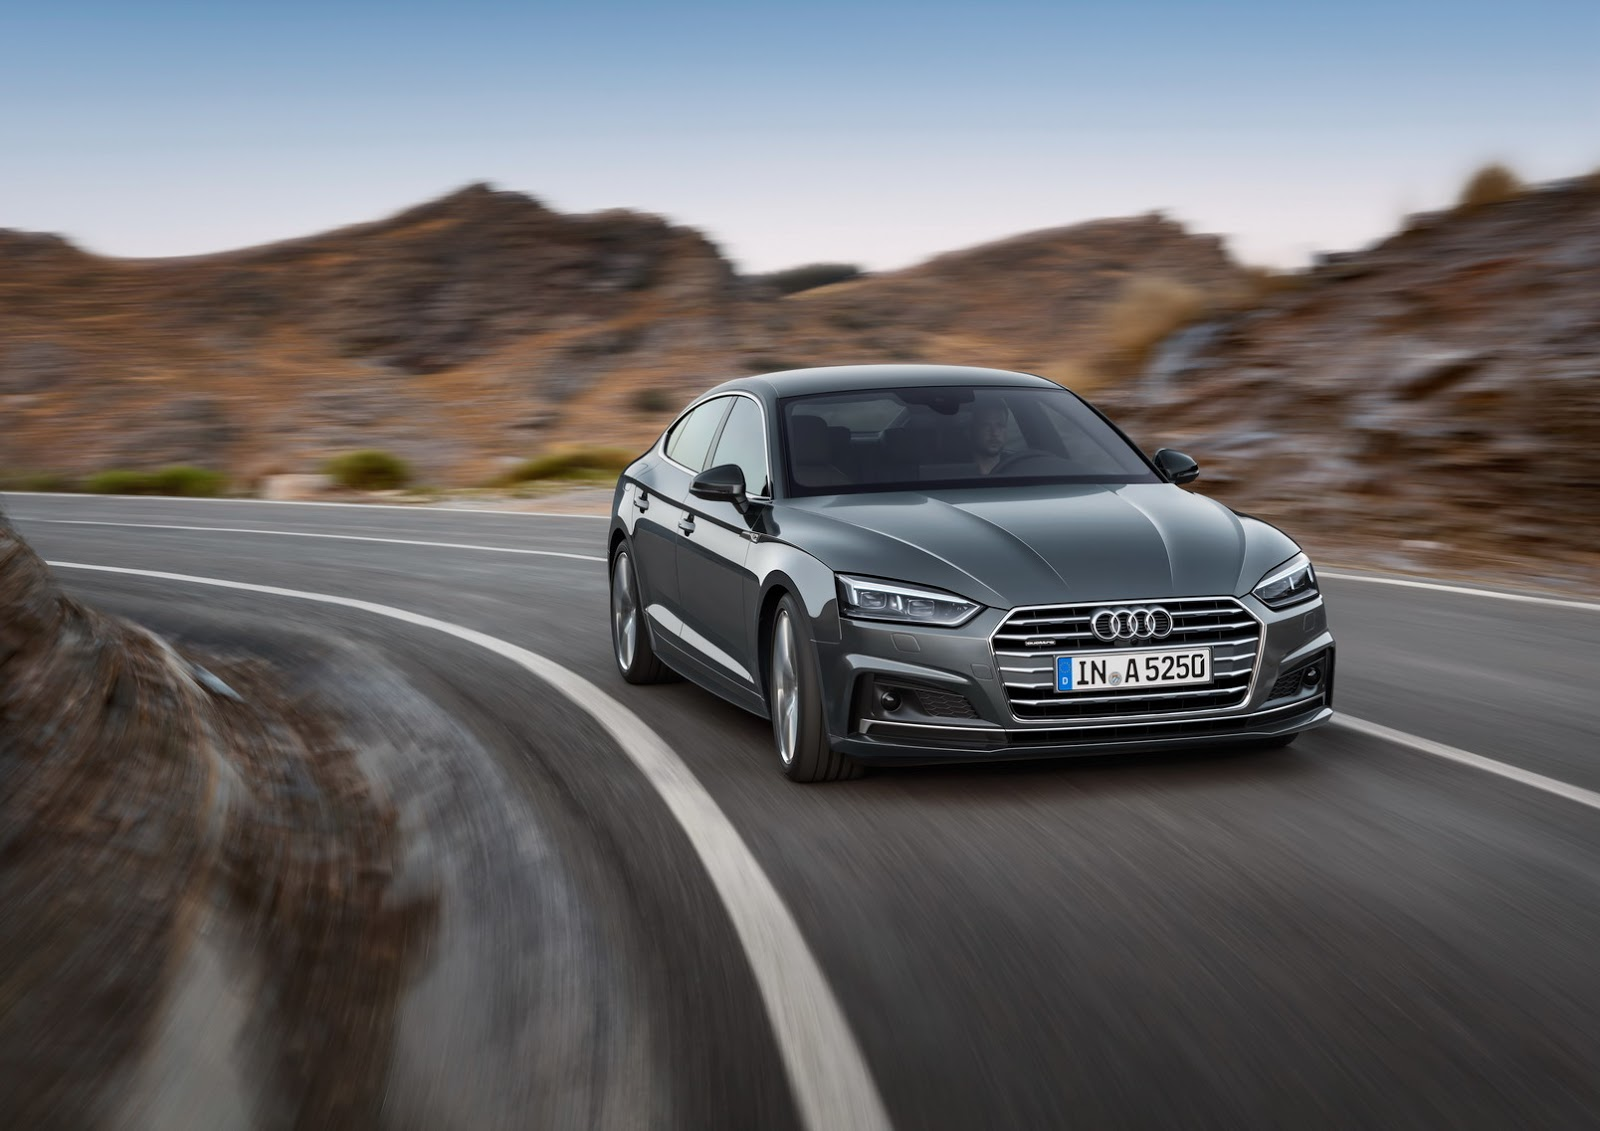 Audi s5 sportback 2017 review by car magazine - 2017 Audi A5 Sportback And S5 Sportback Models Were Recently Revealed Just A Month Ahead Of Their Official Launch It Is Also Expected To Make Its Way To